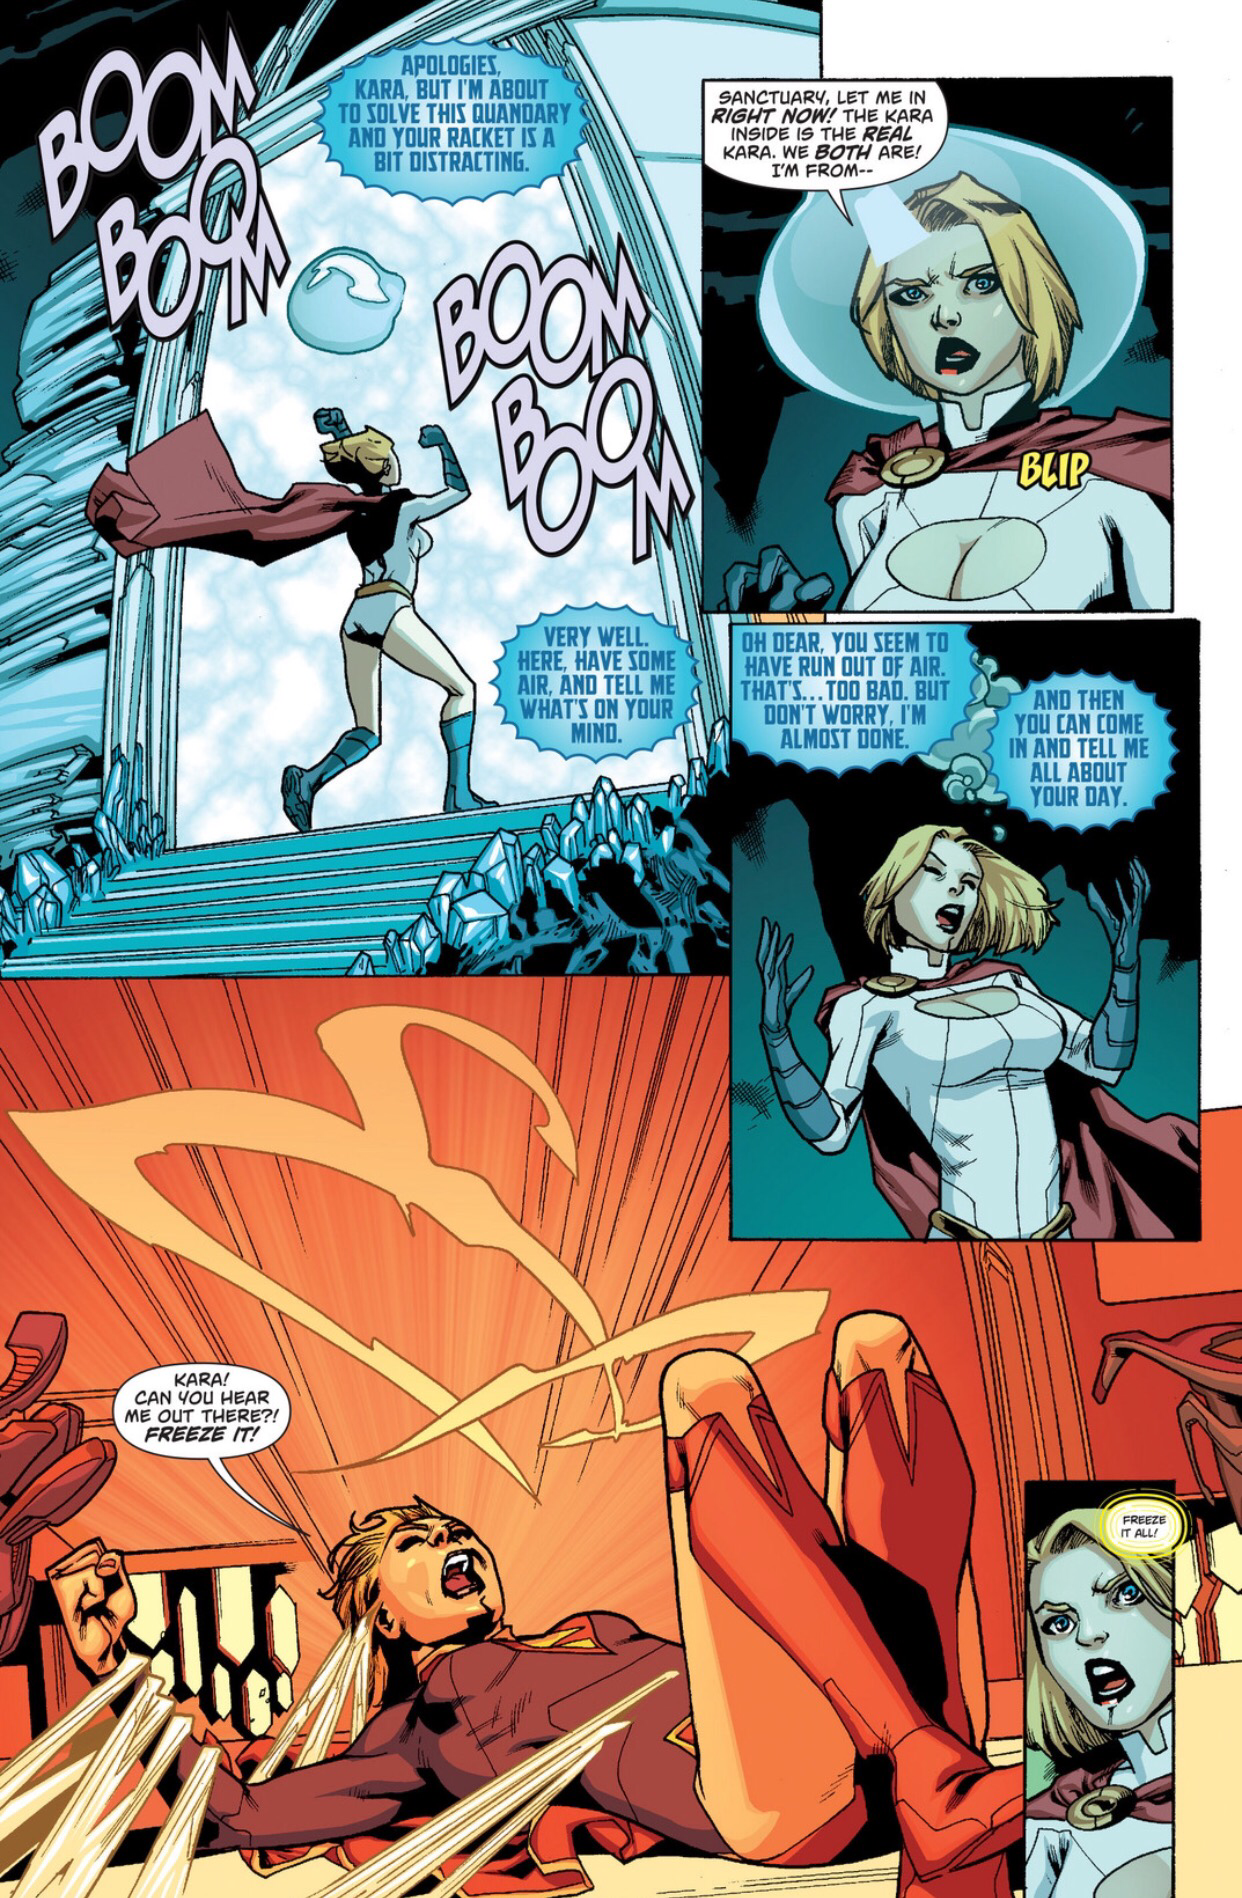 Supergirl uses science